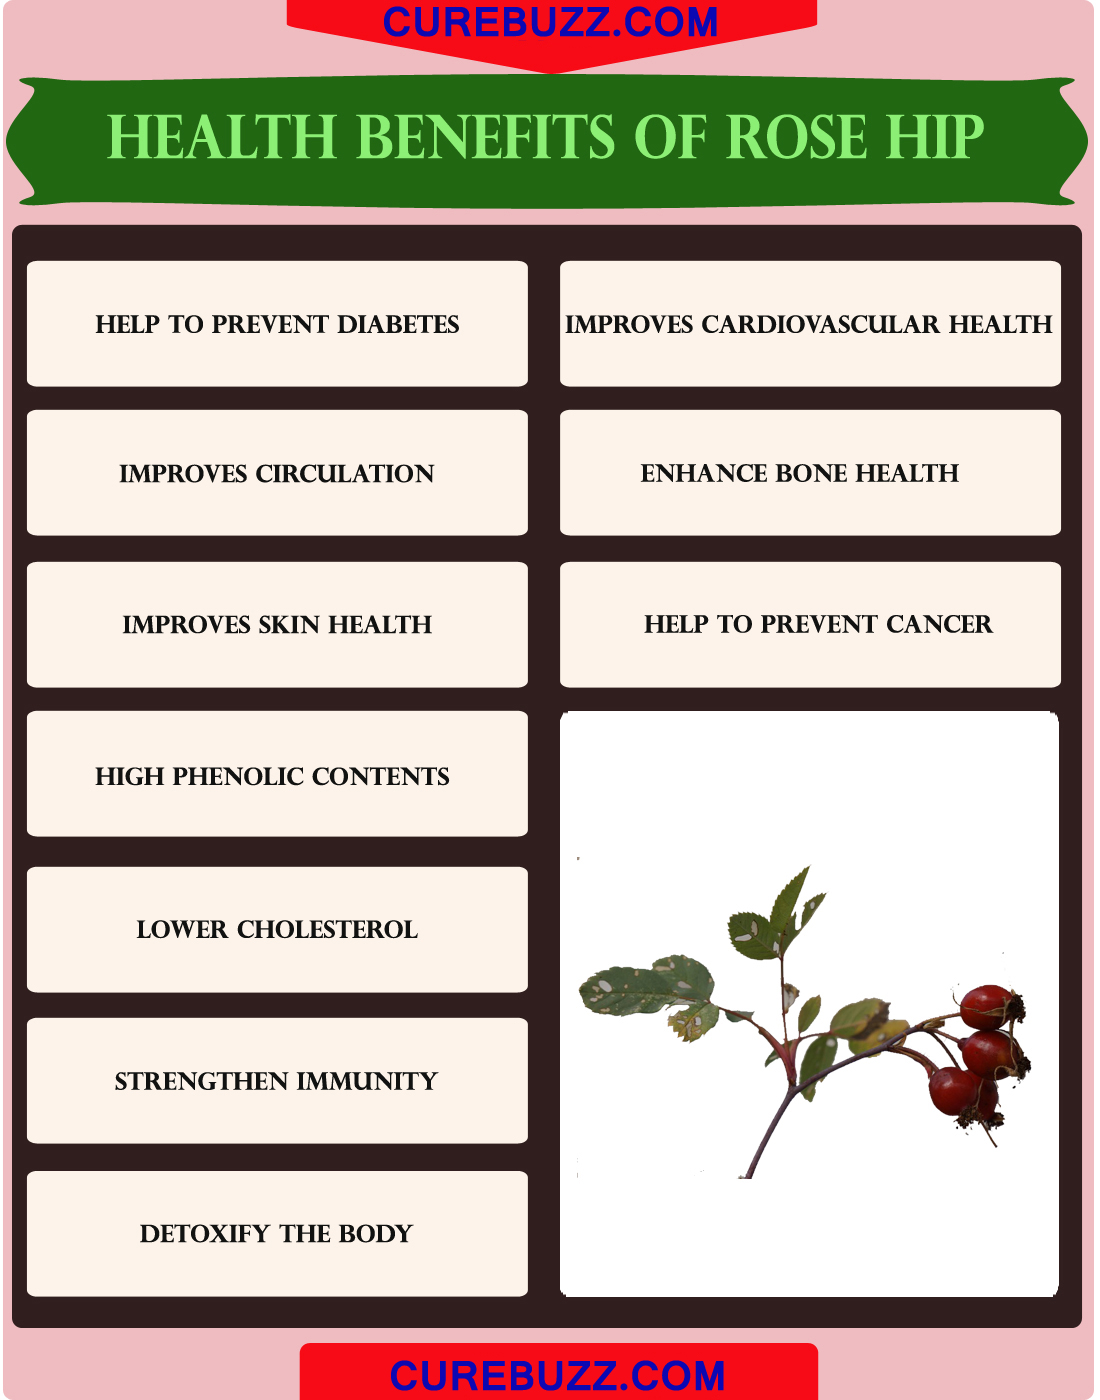 Health Benefits of Rose hip